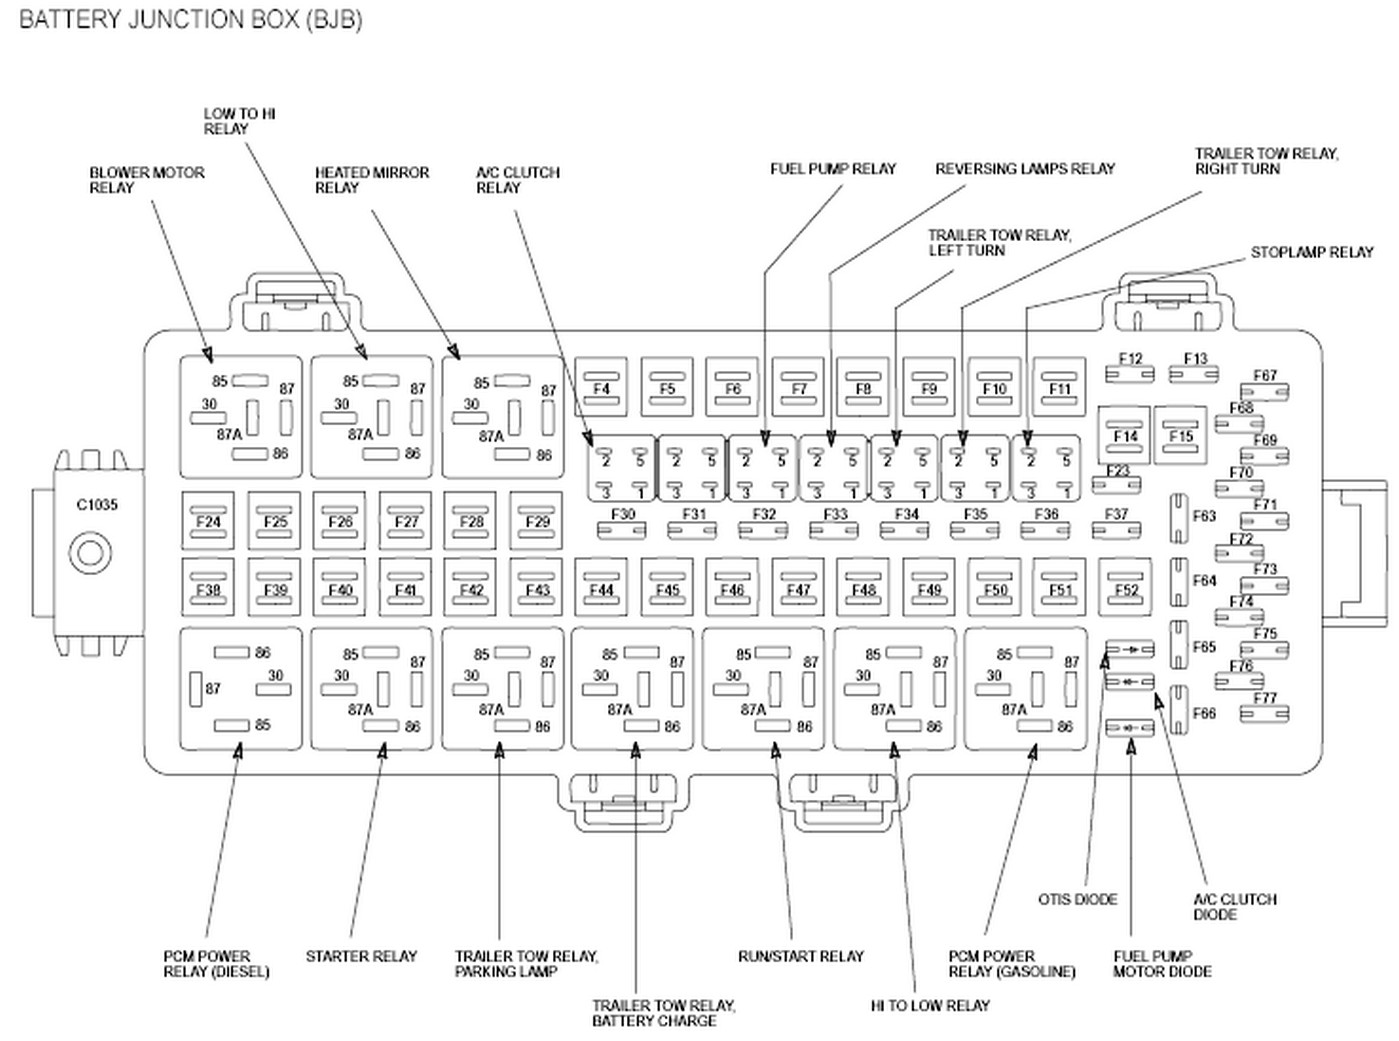 2011 ford f250 fuse box diagram Zoinyhu 2011 ford f250 fuse box diagram image details 2012 ford f250 super duty fuse box diagram at pacquiaovsvargaslive.co